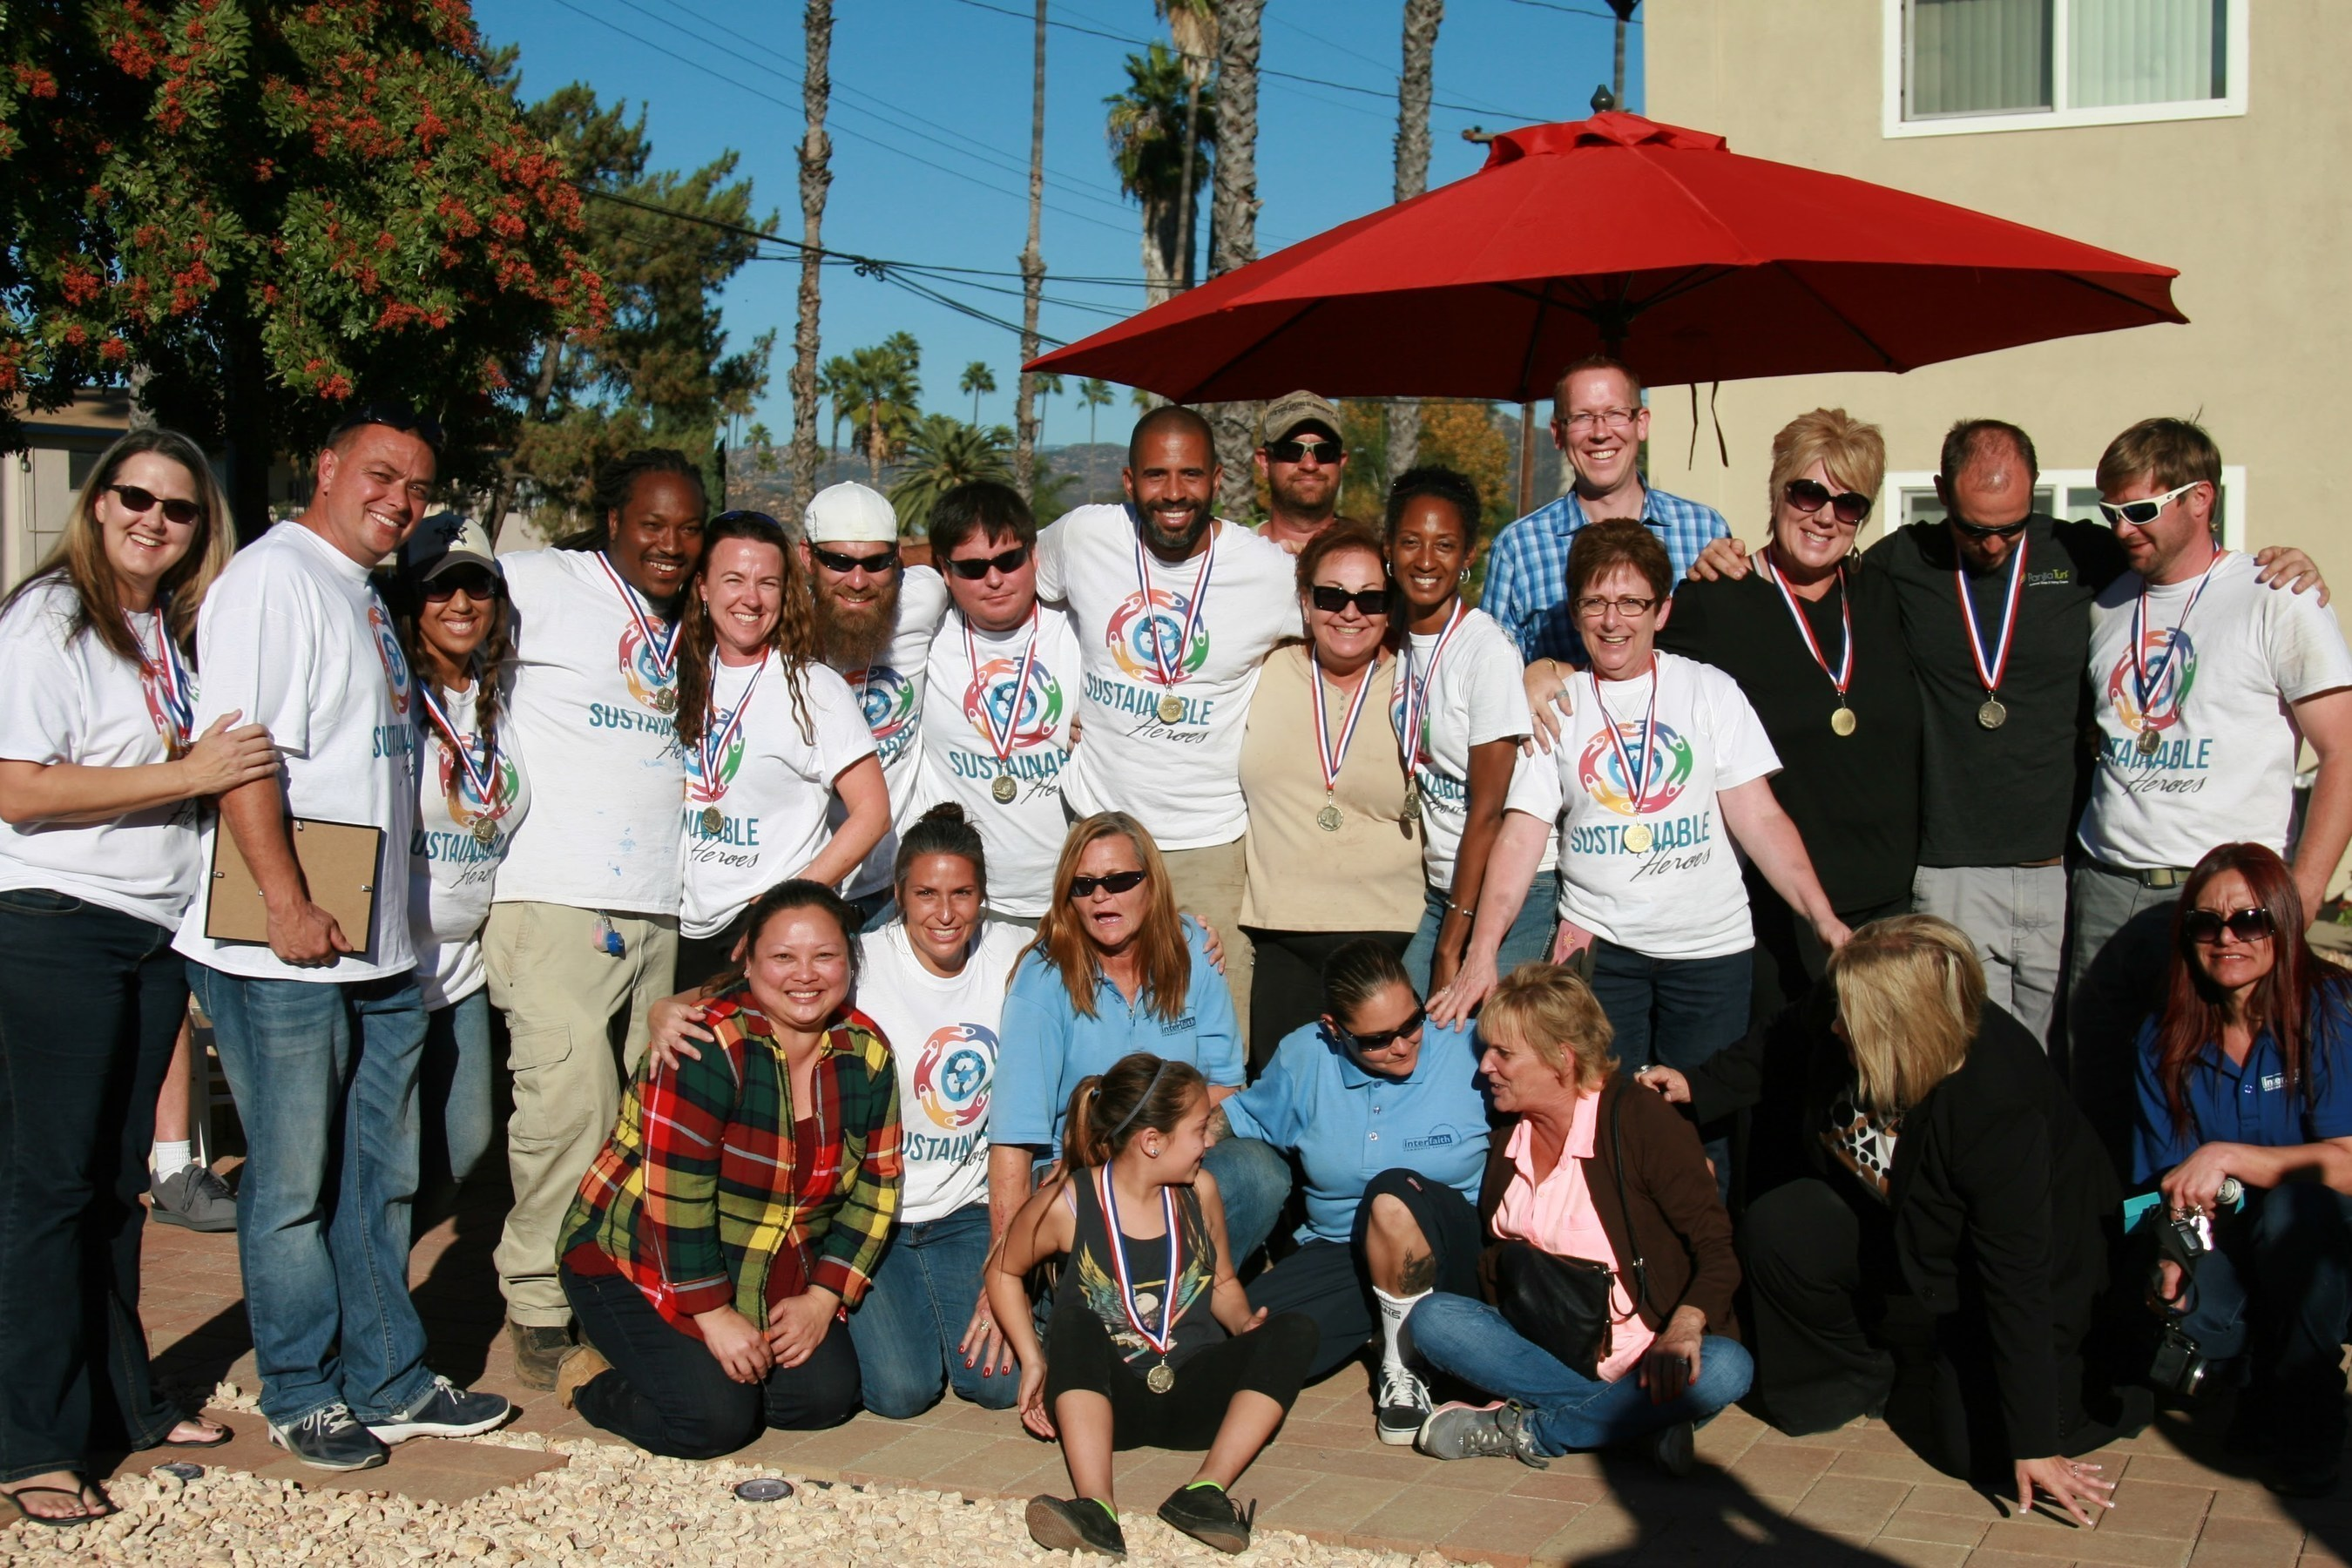 Sustainable Heroes Team Members with Interfaith Community Services partners at the Astor Street Gardens project in Escondido, California.